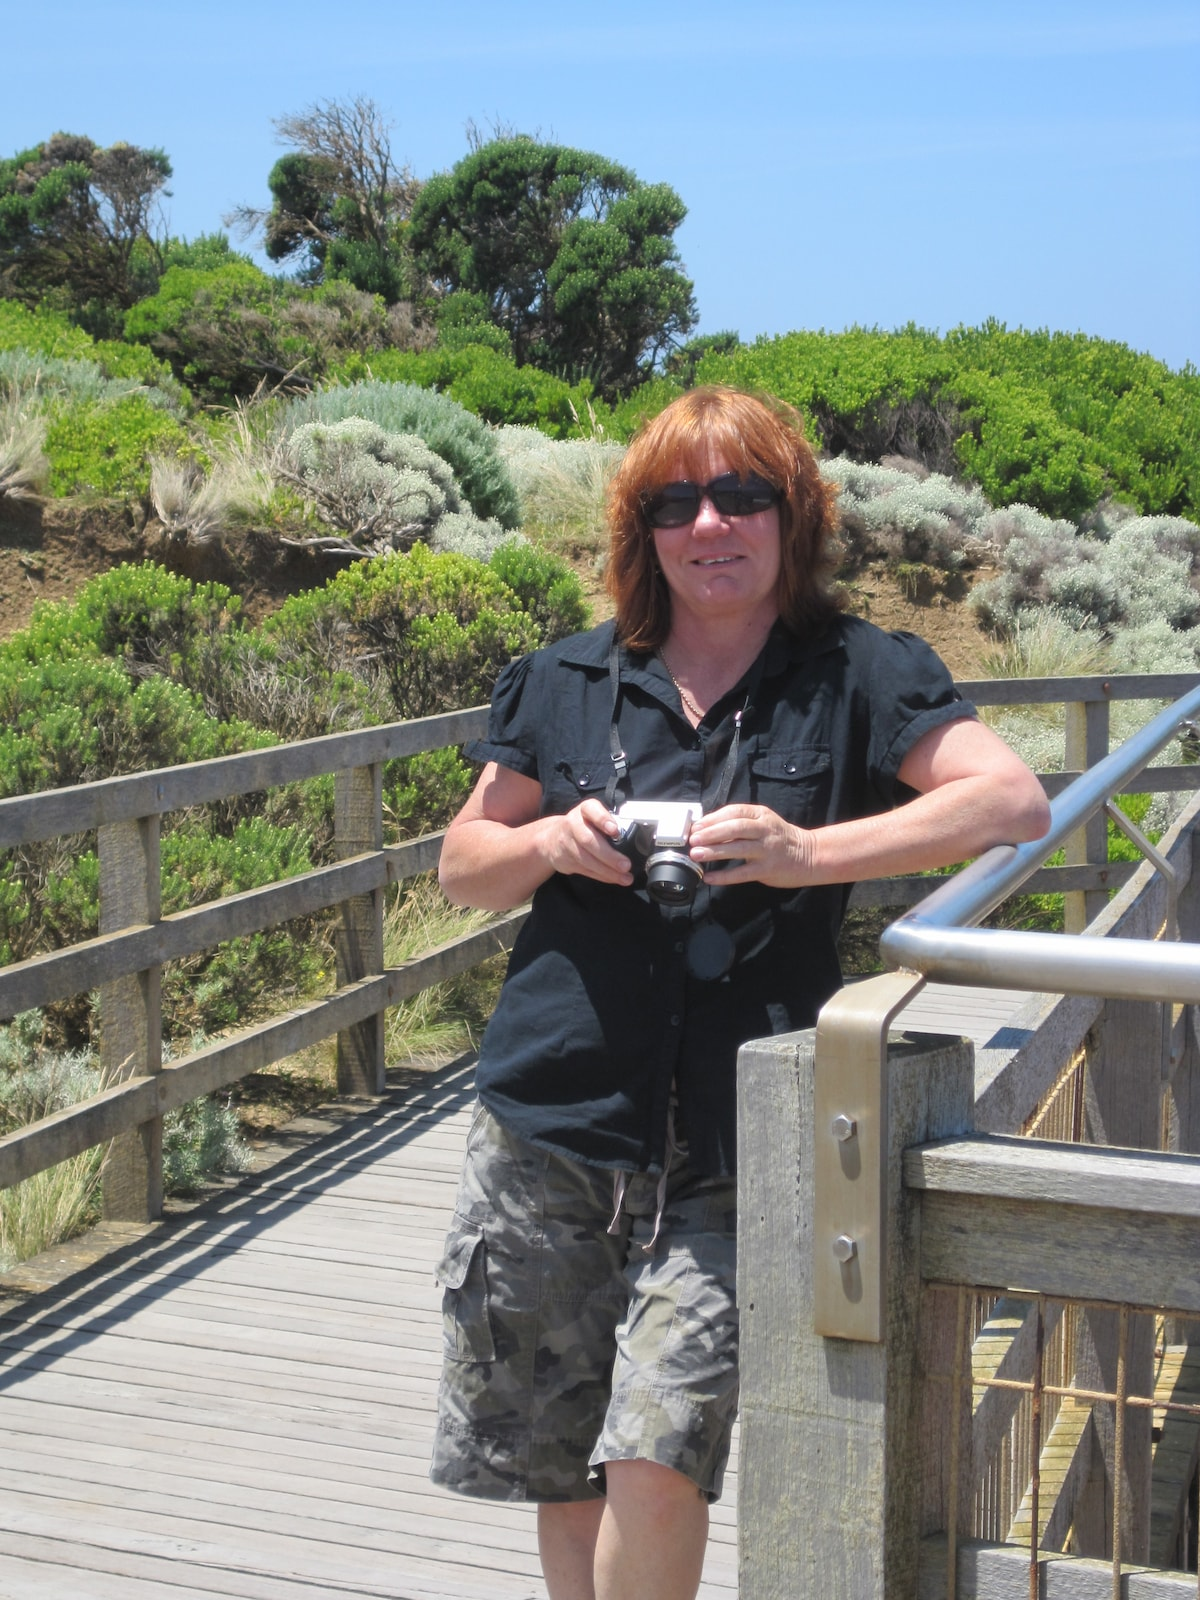 Sue from Brucknell